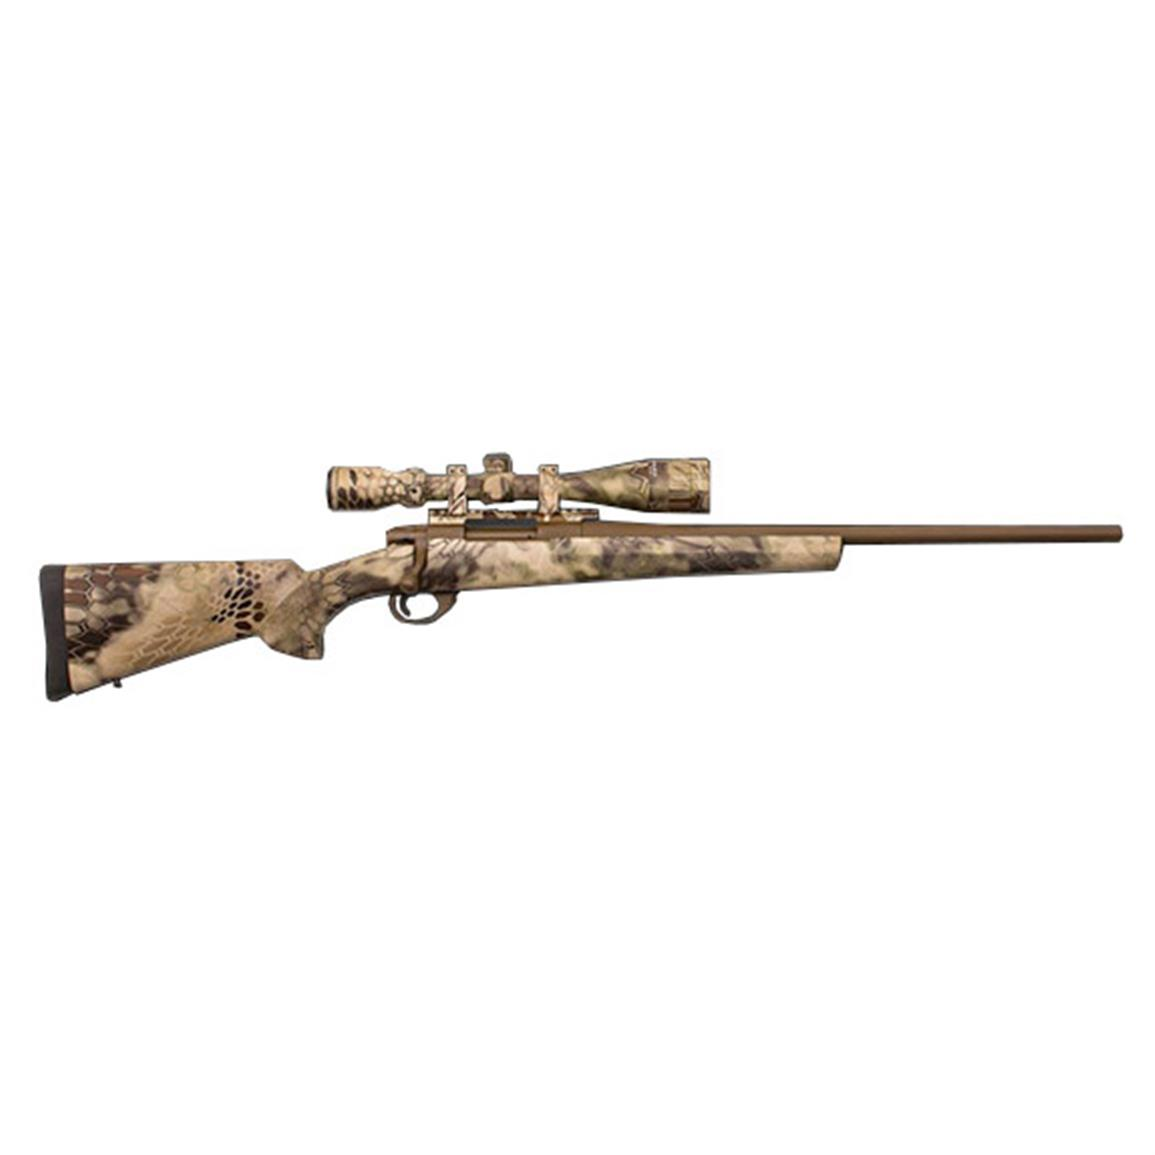 "LSI Howa Kryptex Highlander, .308 Winchester, 4-16x44mm Scope, 22"" Barrel, 4+1 Rounds"